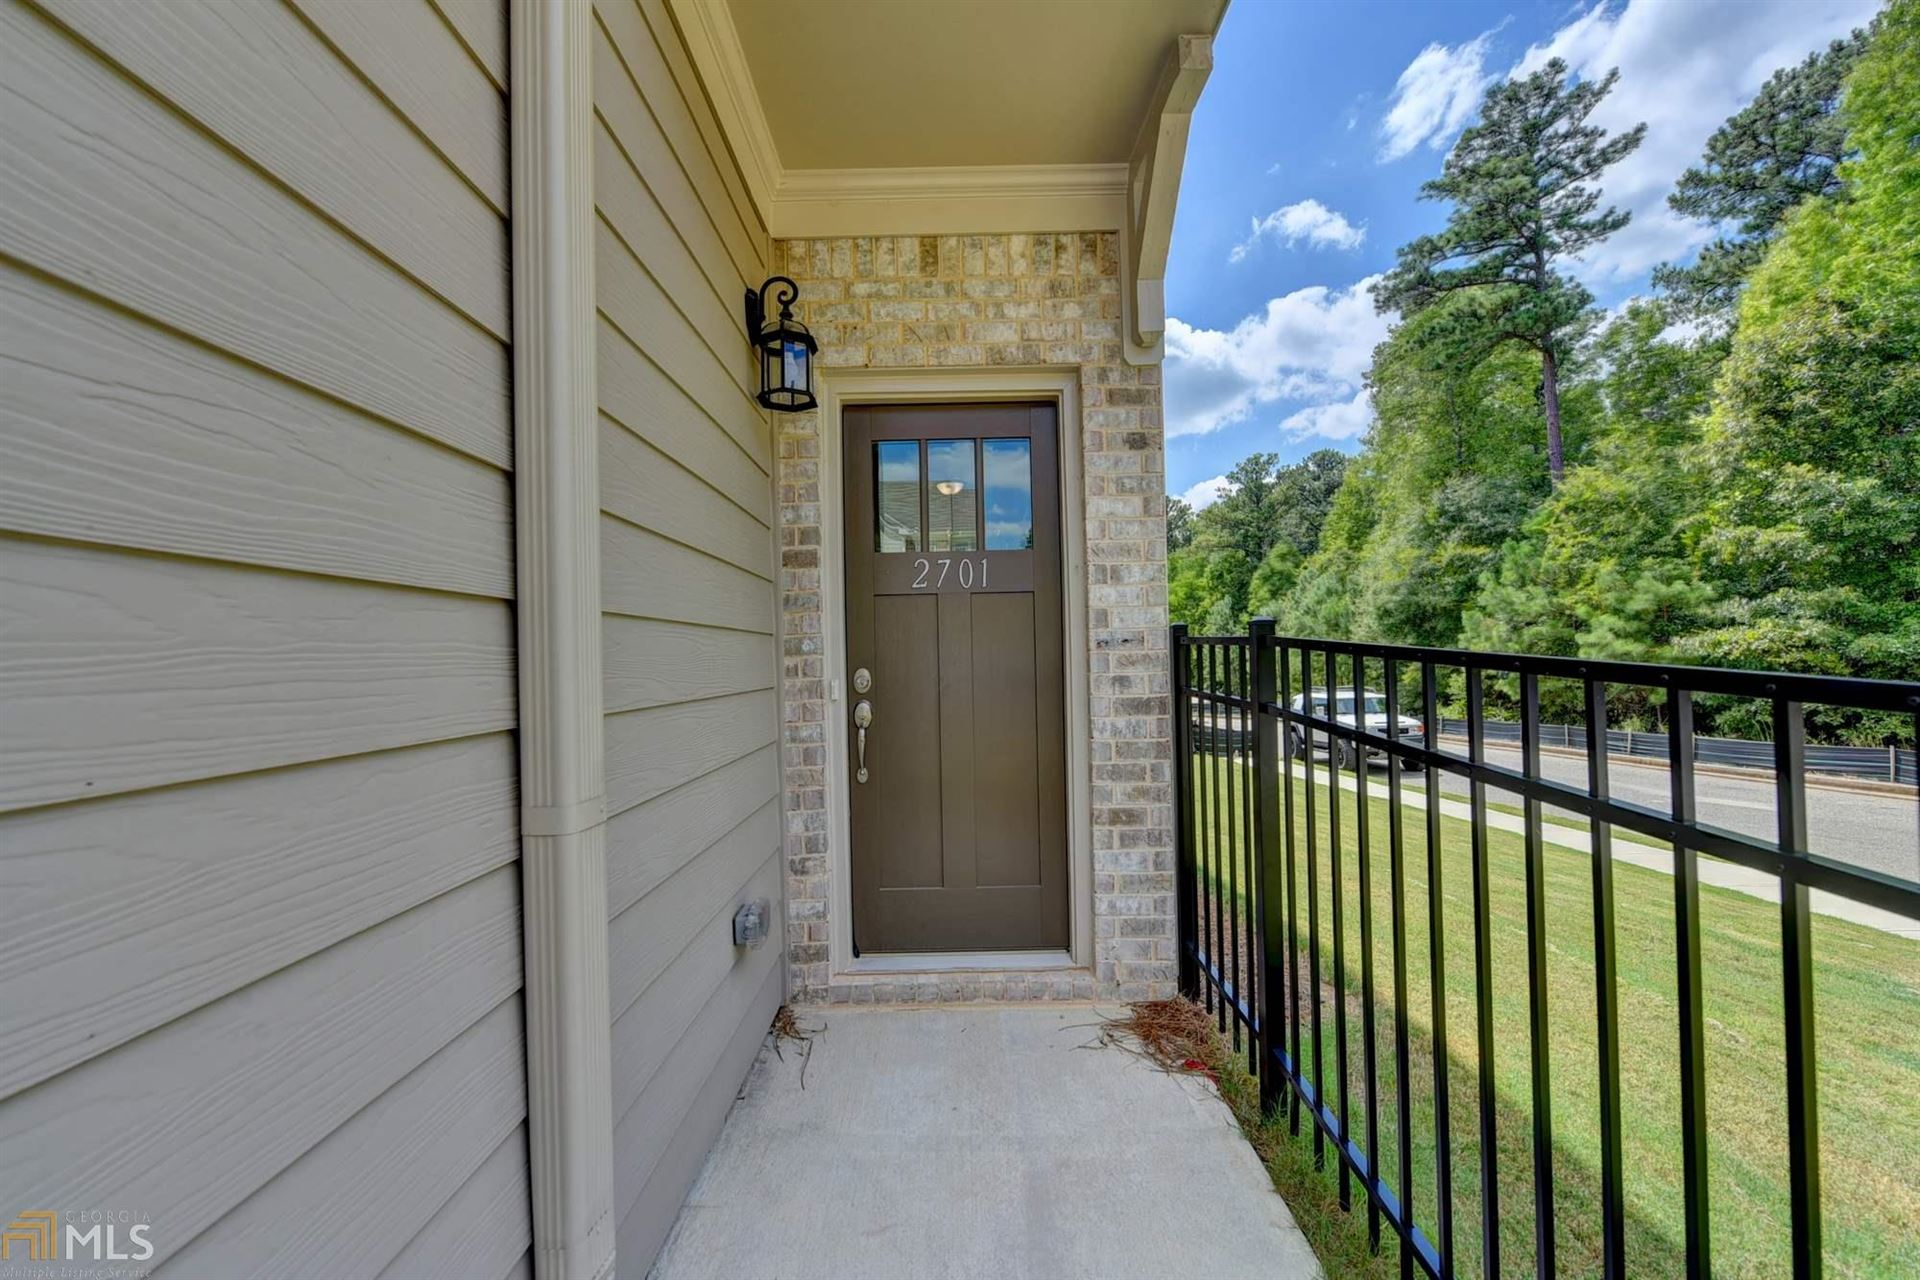 5398 Brooklands Dr, Lithonia, GA 30058 - MLS#: 8870841